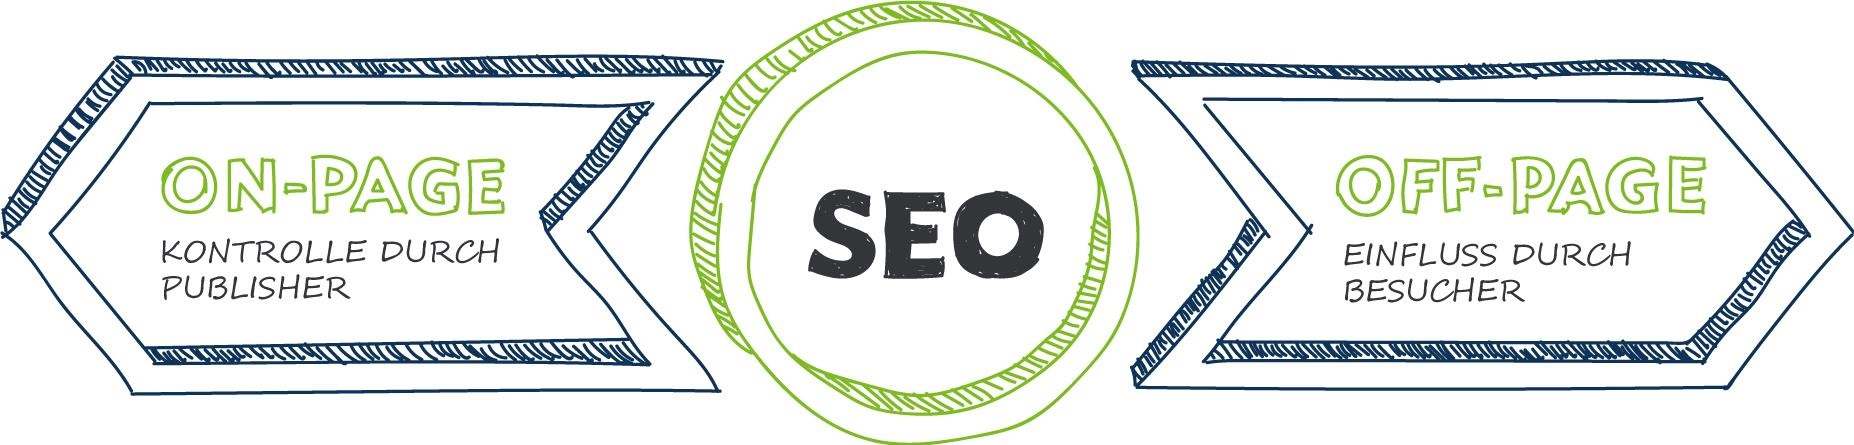 SEO - On Page und Off Page